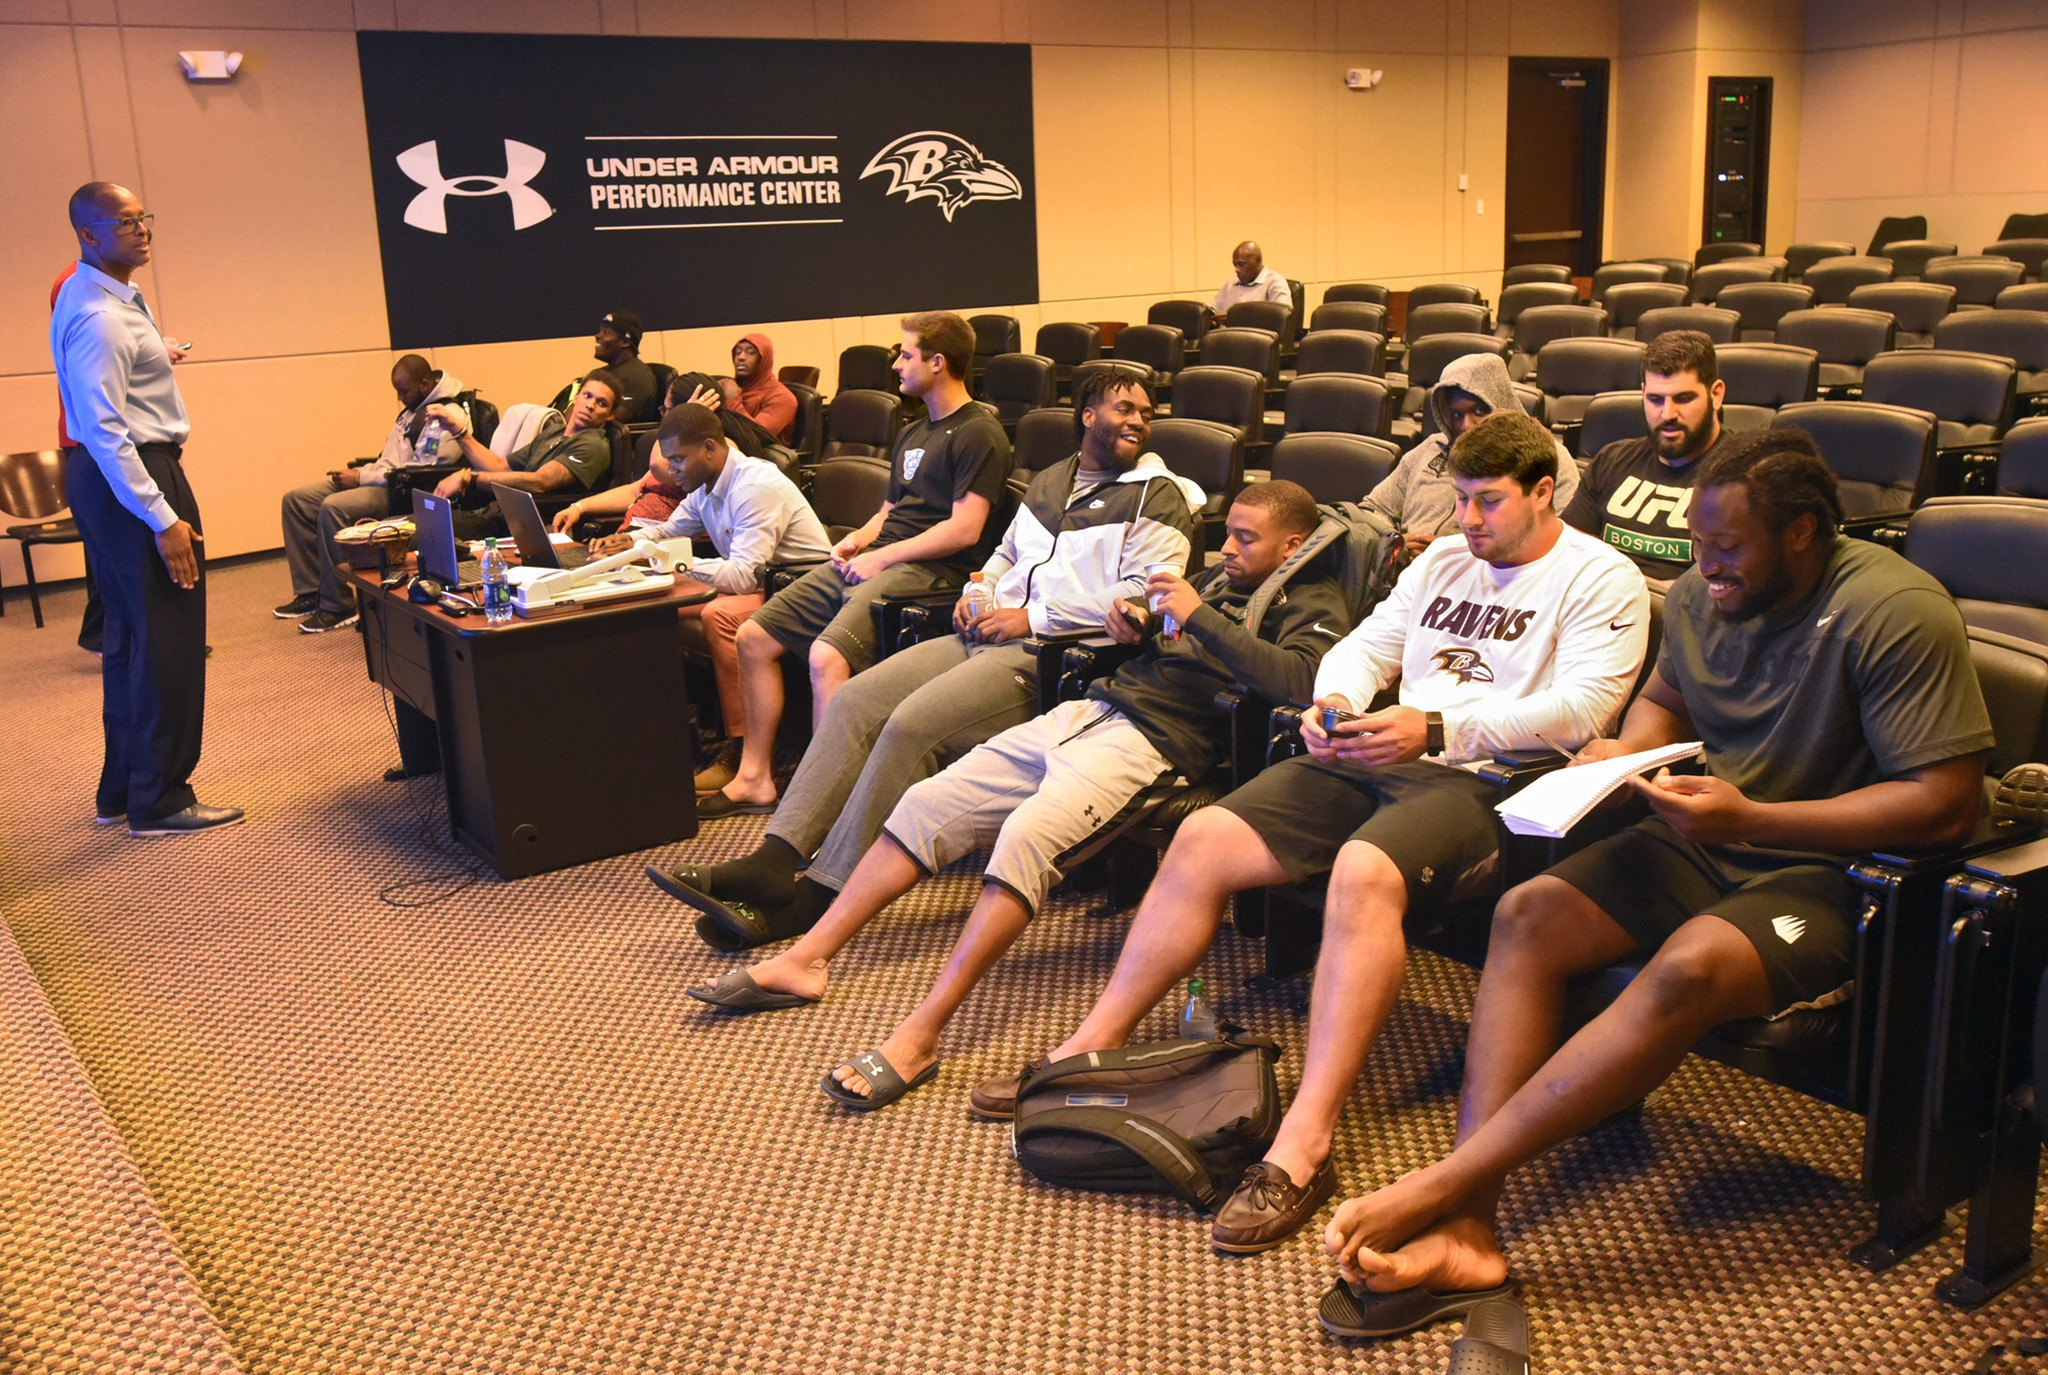 Baltimore Ravens rookie orientation session